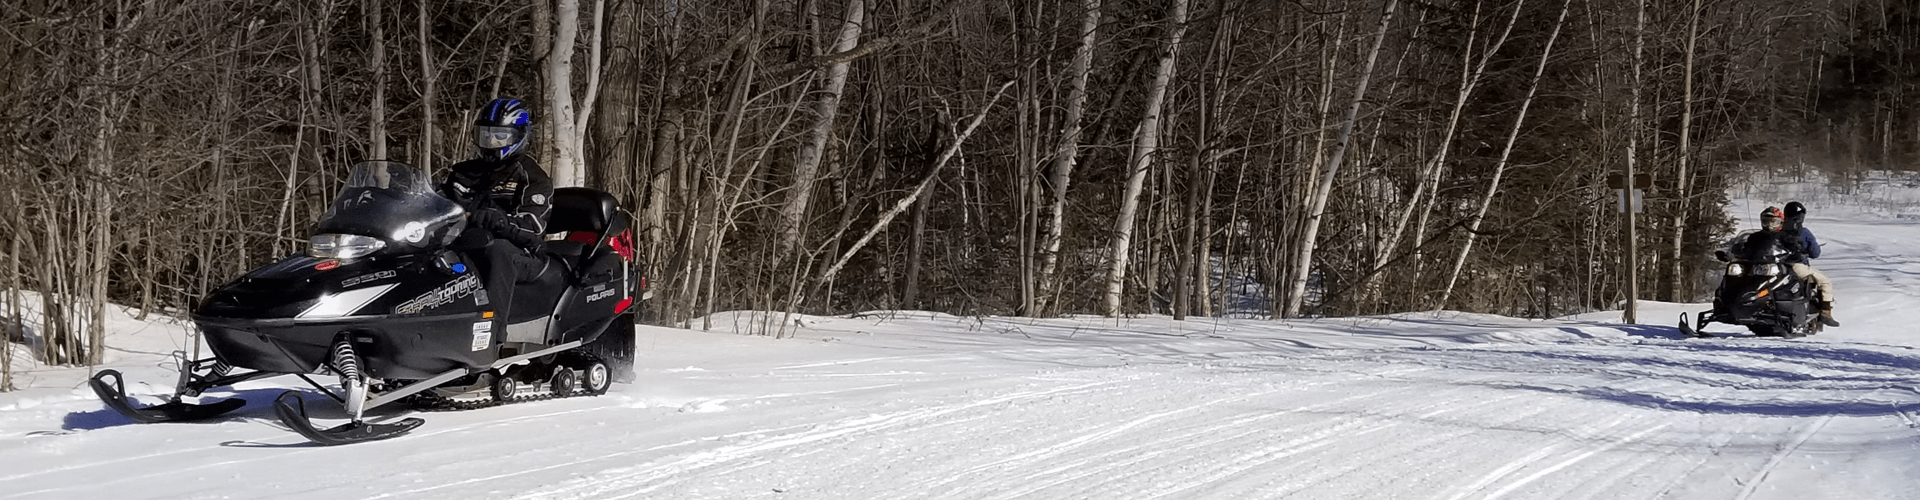 Snowmobiling on a trail in Northern NH